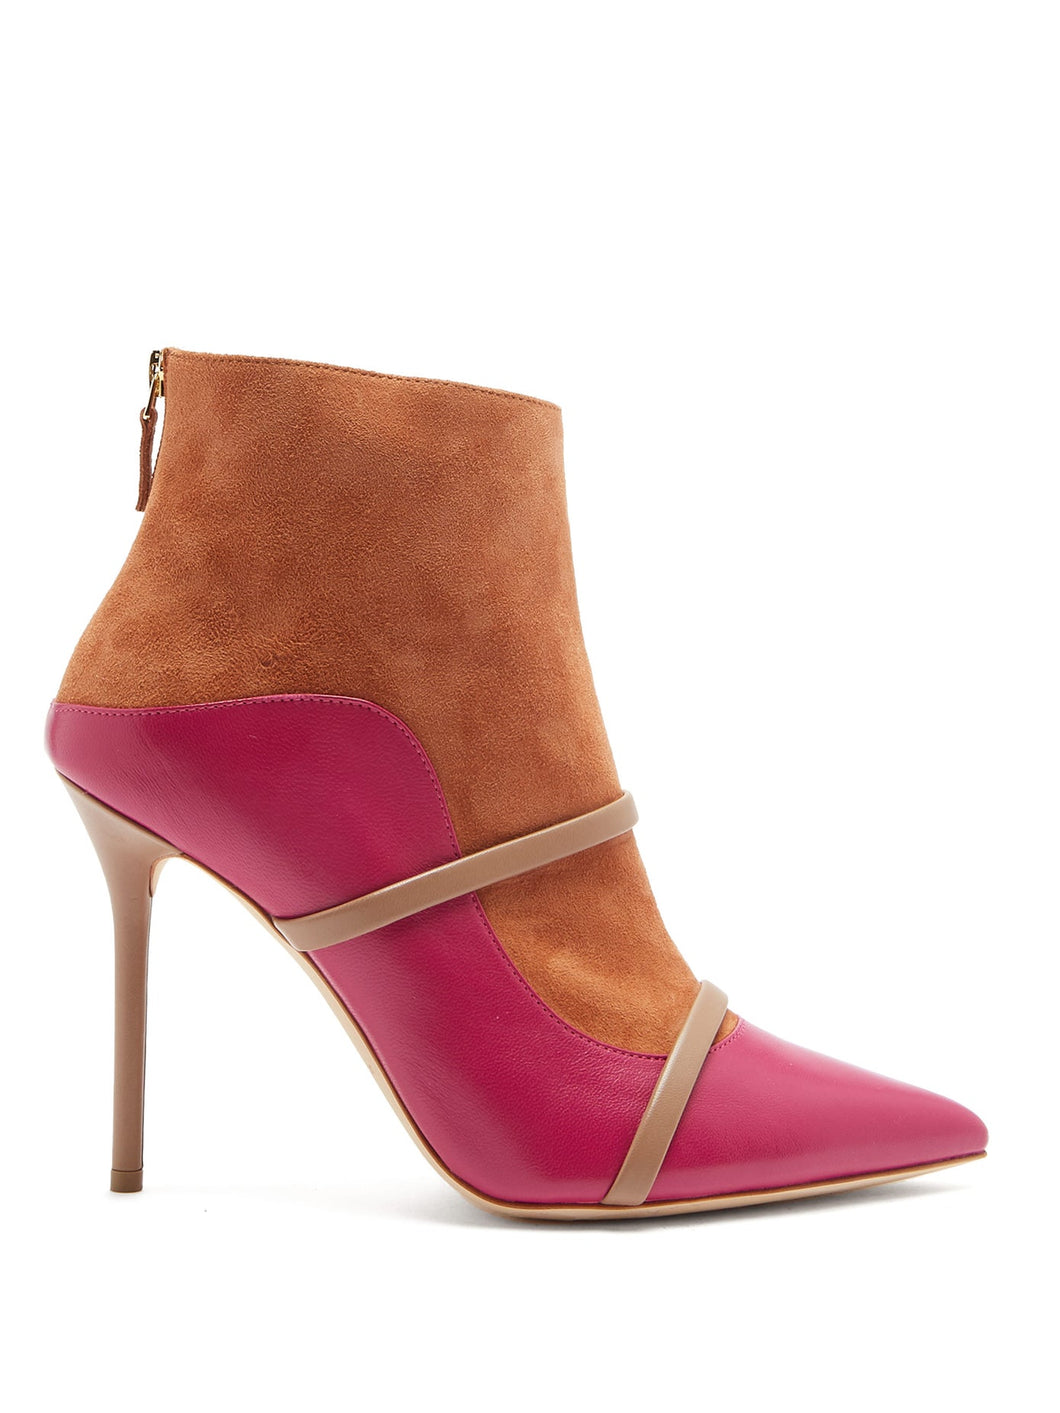 Madison leather and suede ankle boots